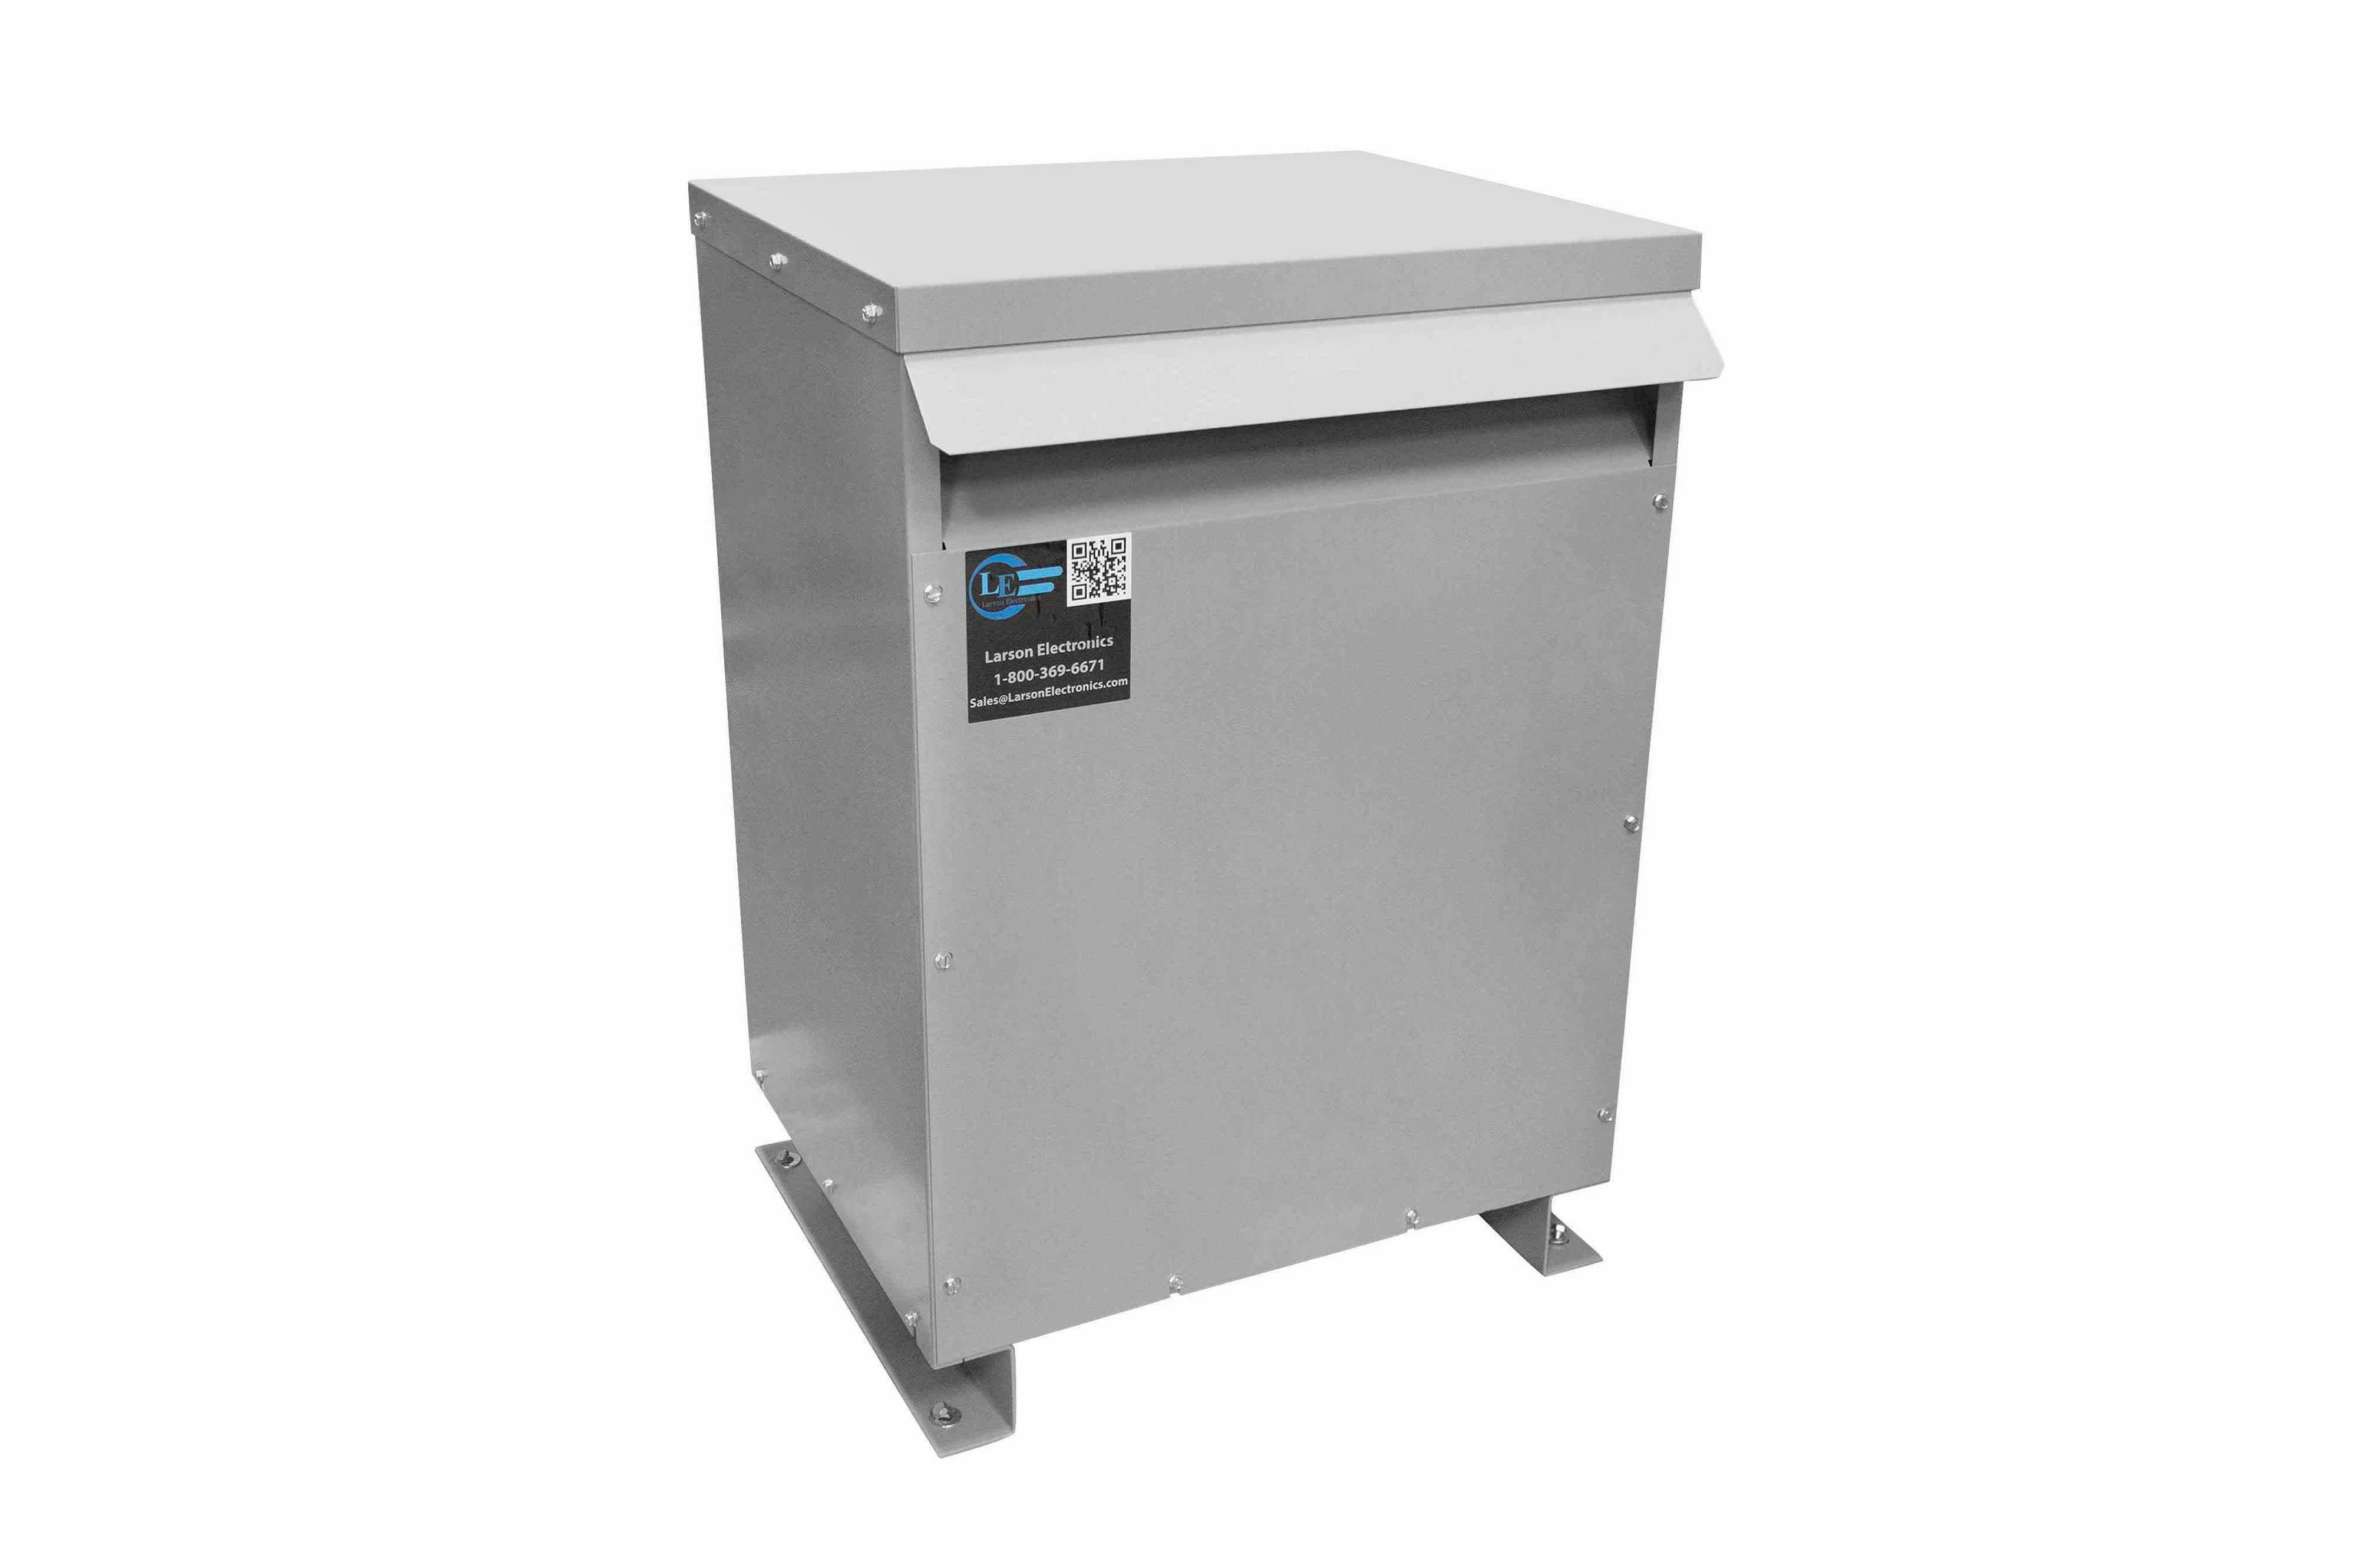 400 kVA 3PH Isolation Transformer, 240V Wye Primary, 208V Delta Secondary, N3R, Ventilated, 60 Hz